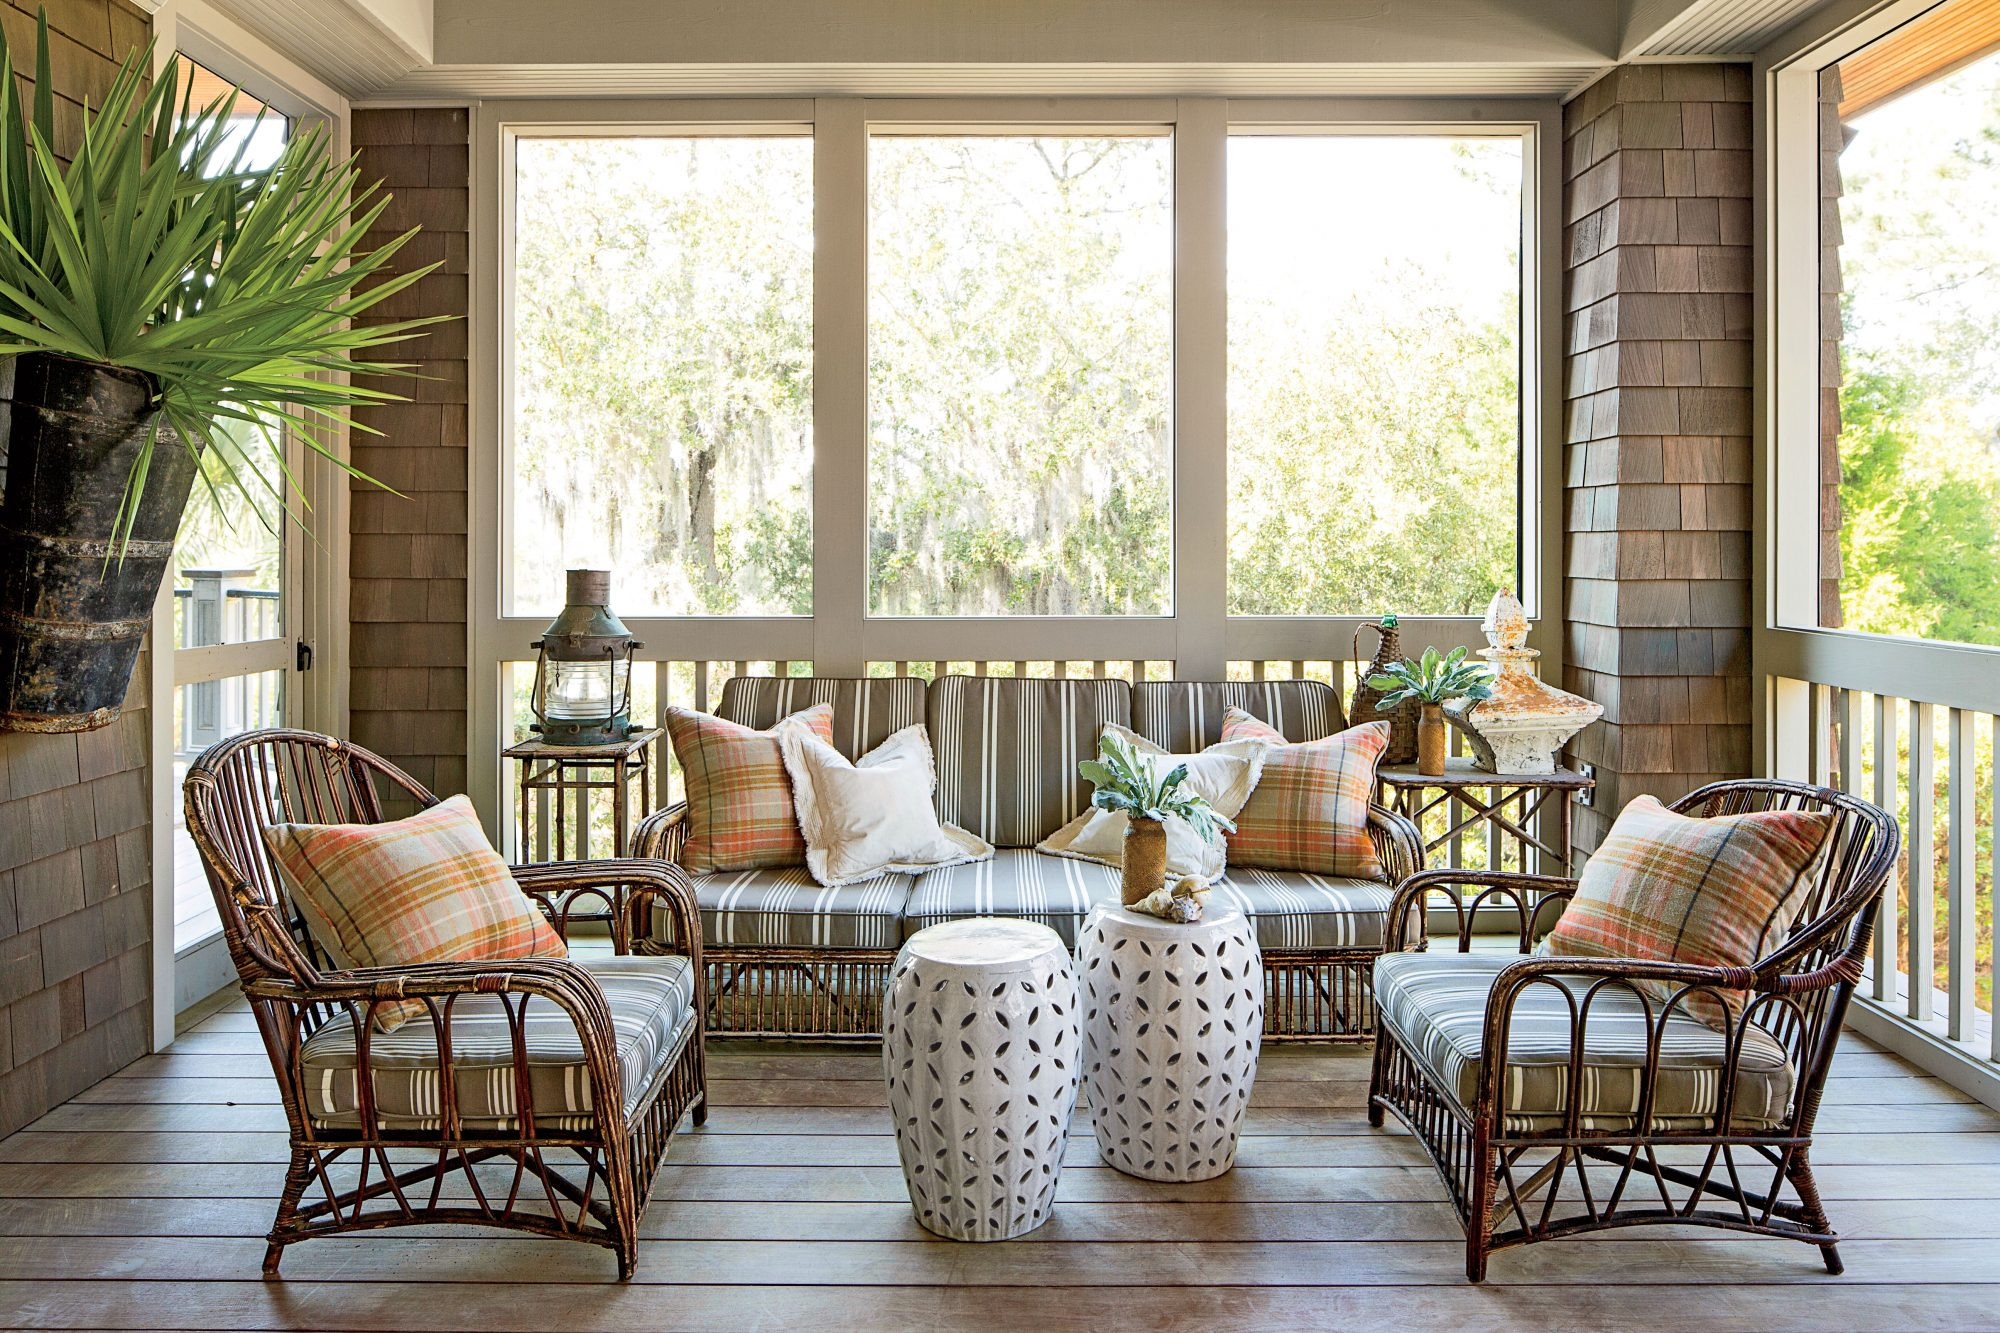 What She Did: Porch